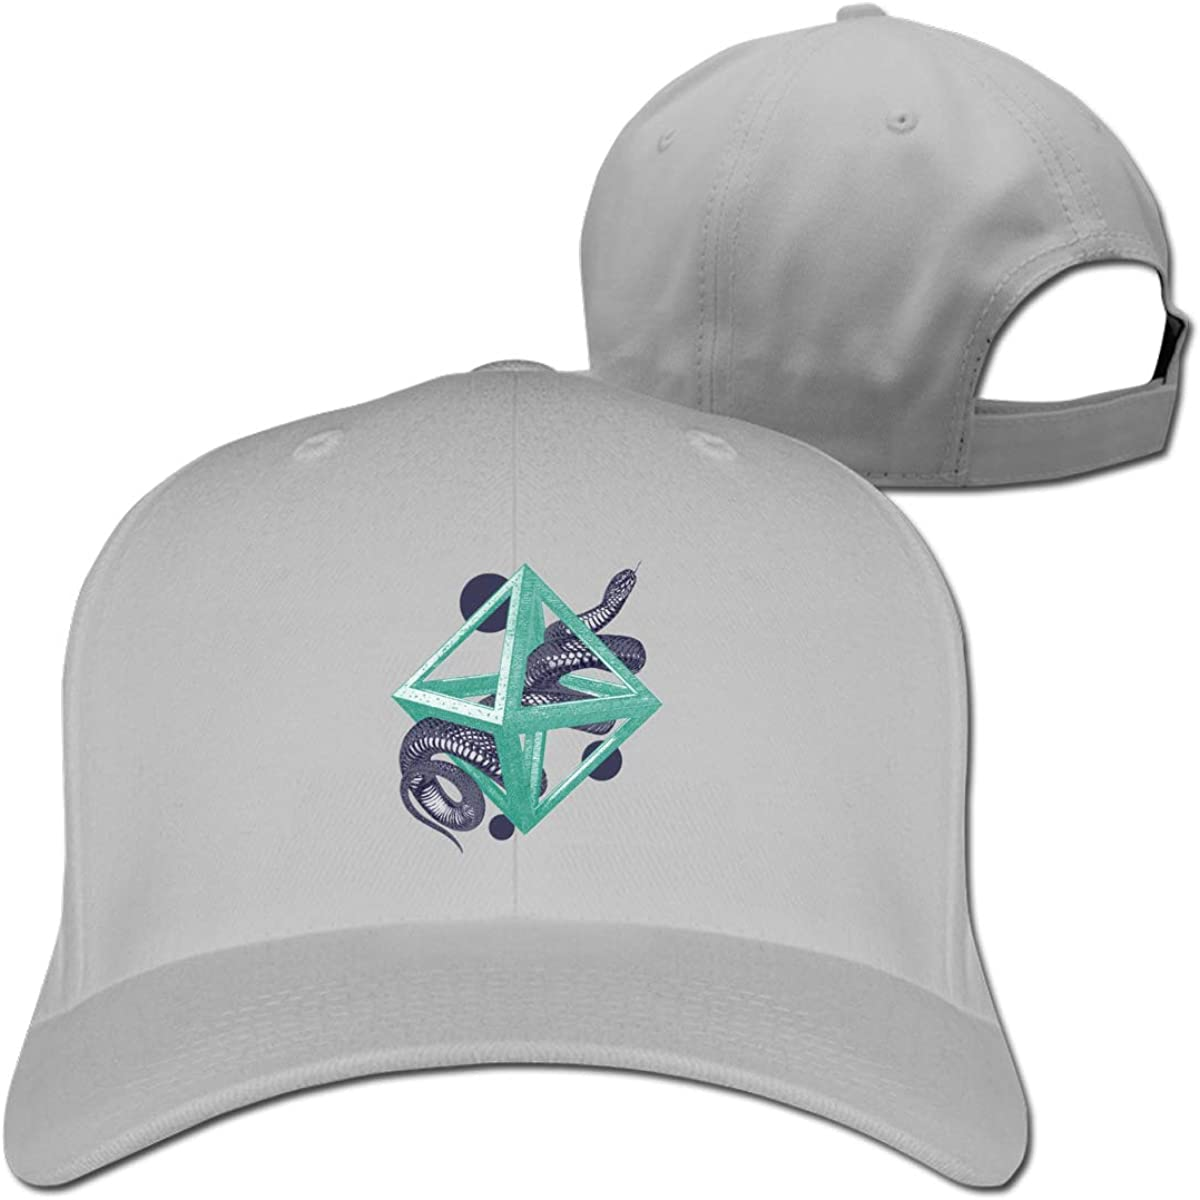 Snake Geometry Fashion Adjustable Cotton Baseball Caps Trucker Driver Hat Outdoor Cap Gray